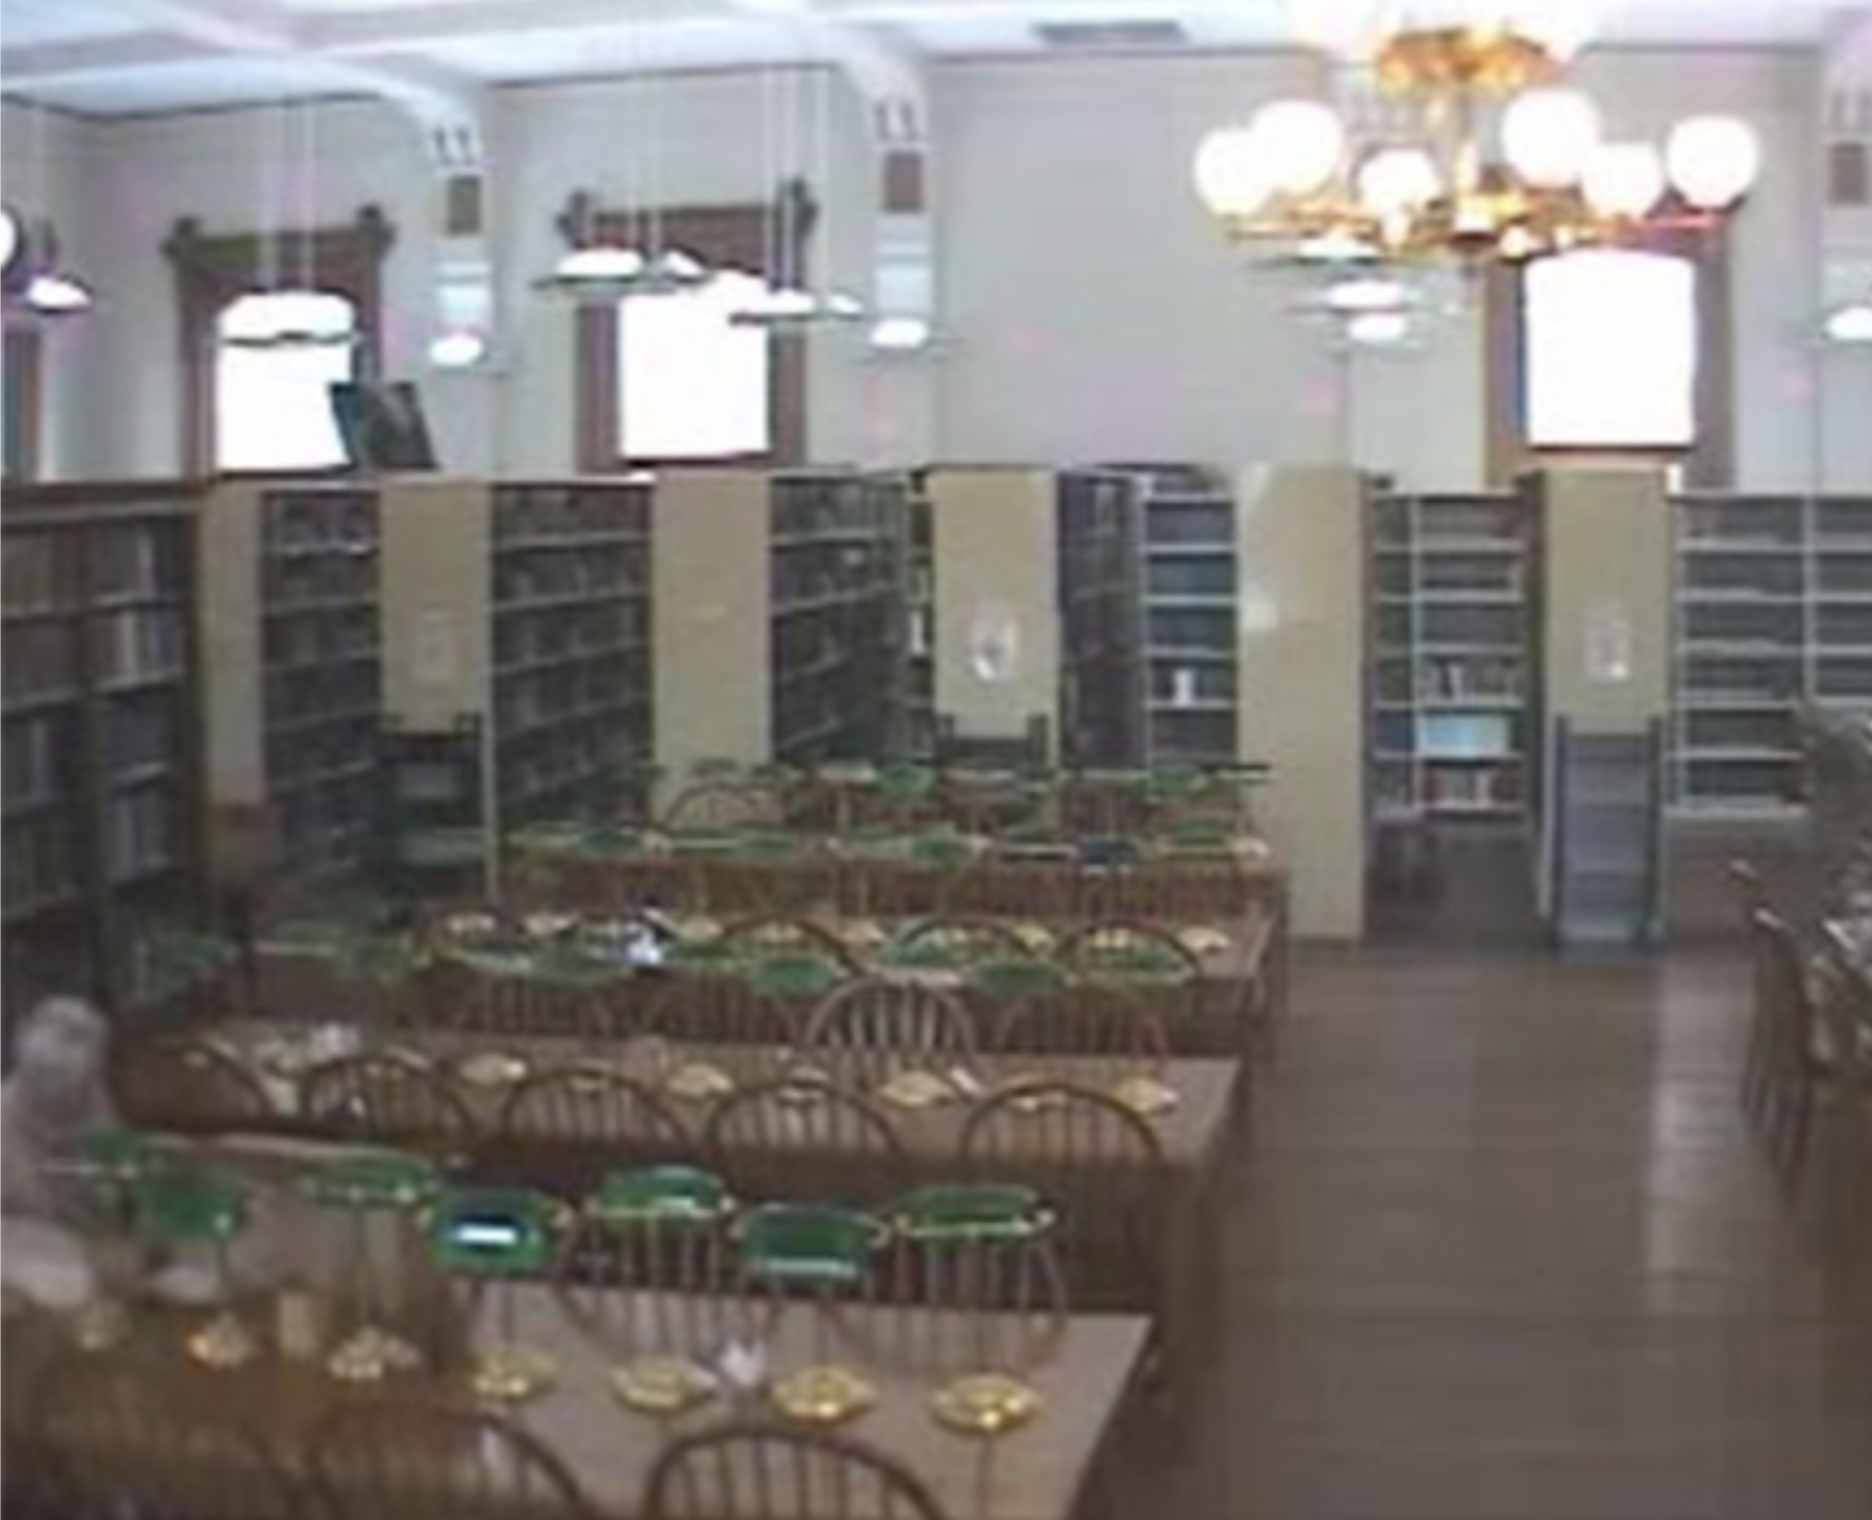 Check out the lower left corner… is it a library patron or a ghostly visitor?